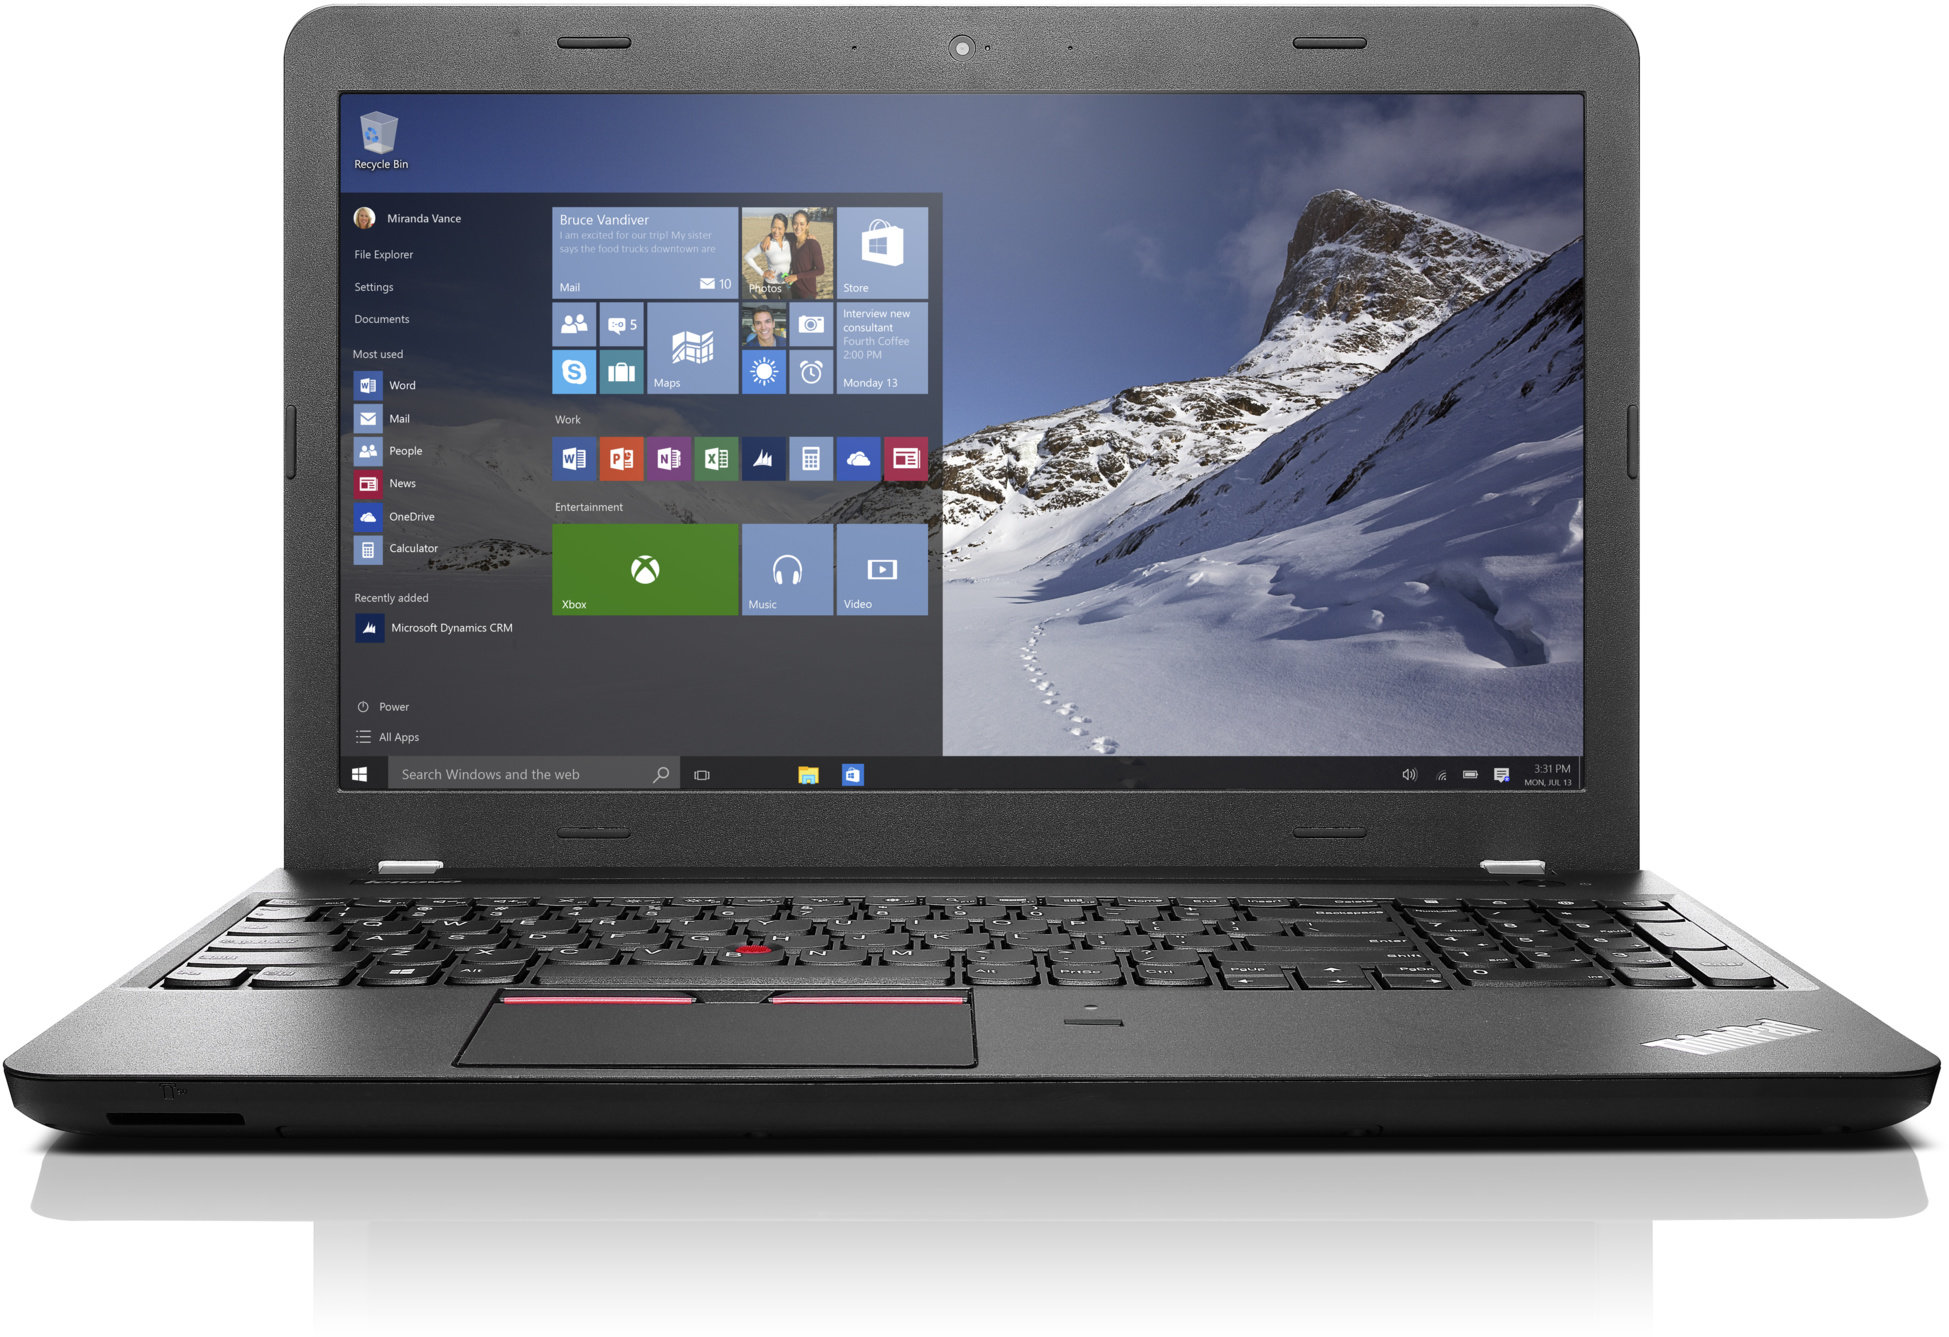 Recenze notebooku Lenovo ThinkPad Edge E560